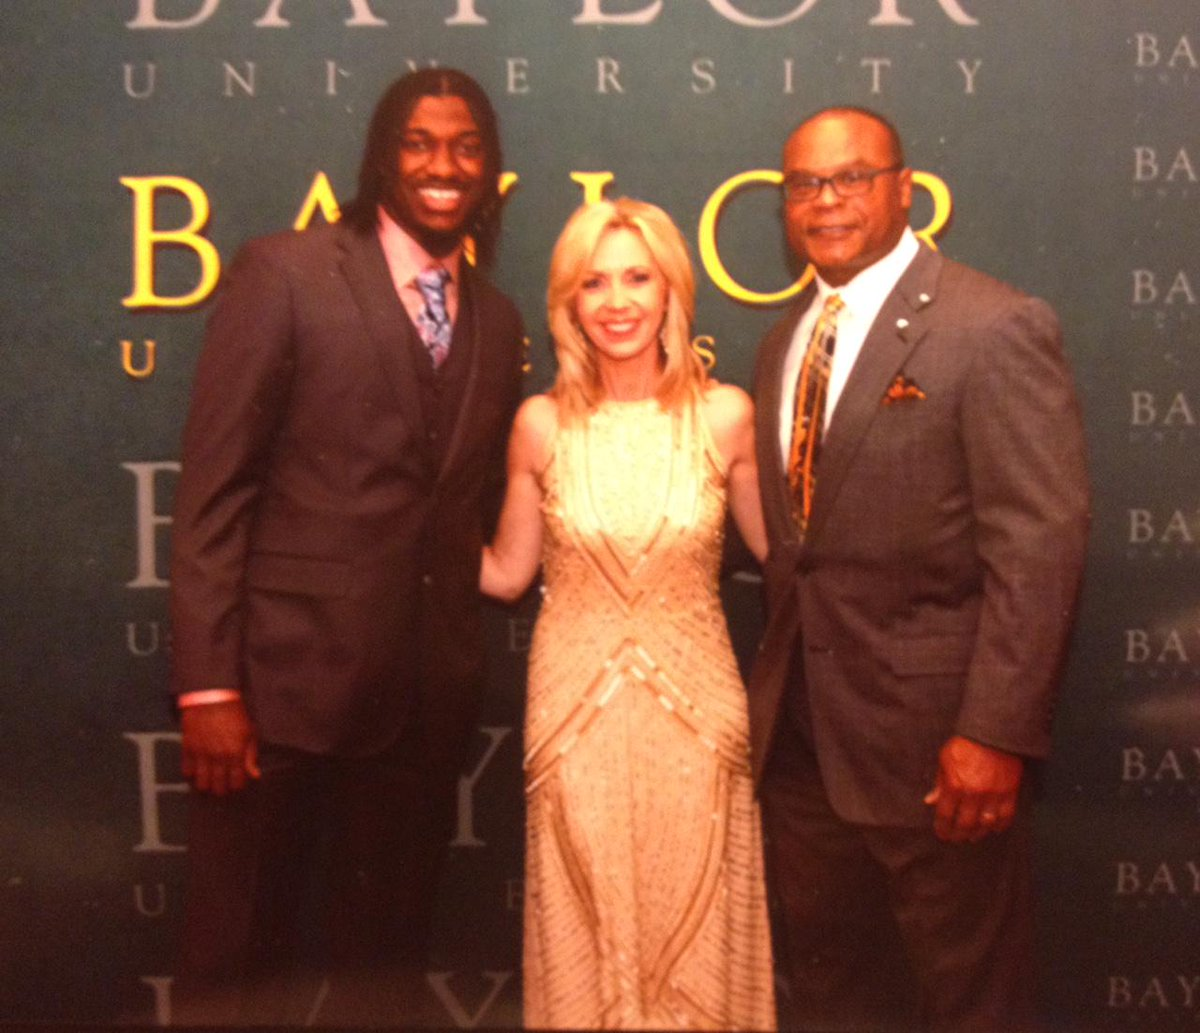 Honored to be on same bill as these #Baylor legends, Heisman Winner, @RGIII and Hall of Famer, Mike Singletary.#SicEm http://t.co/aRvhYJJe0t